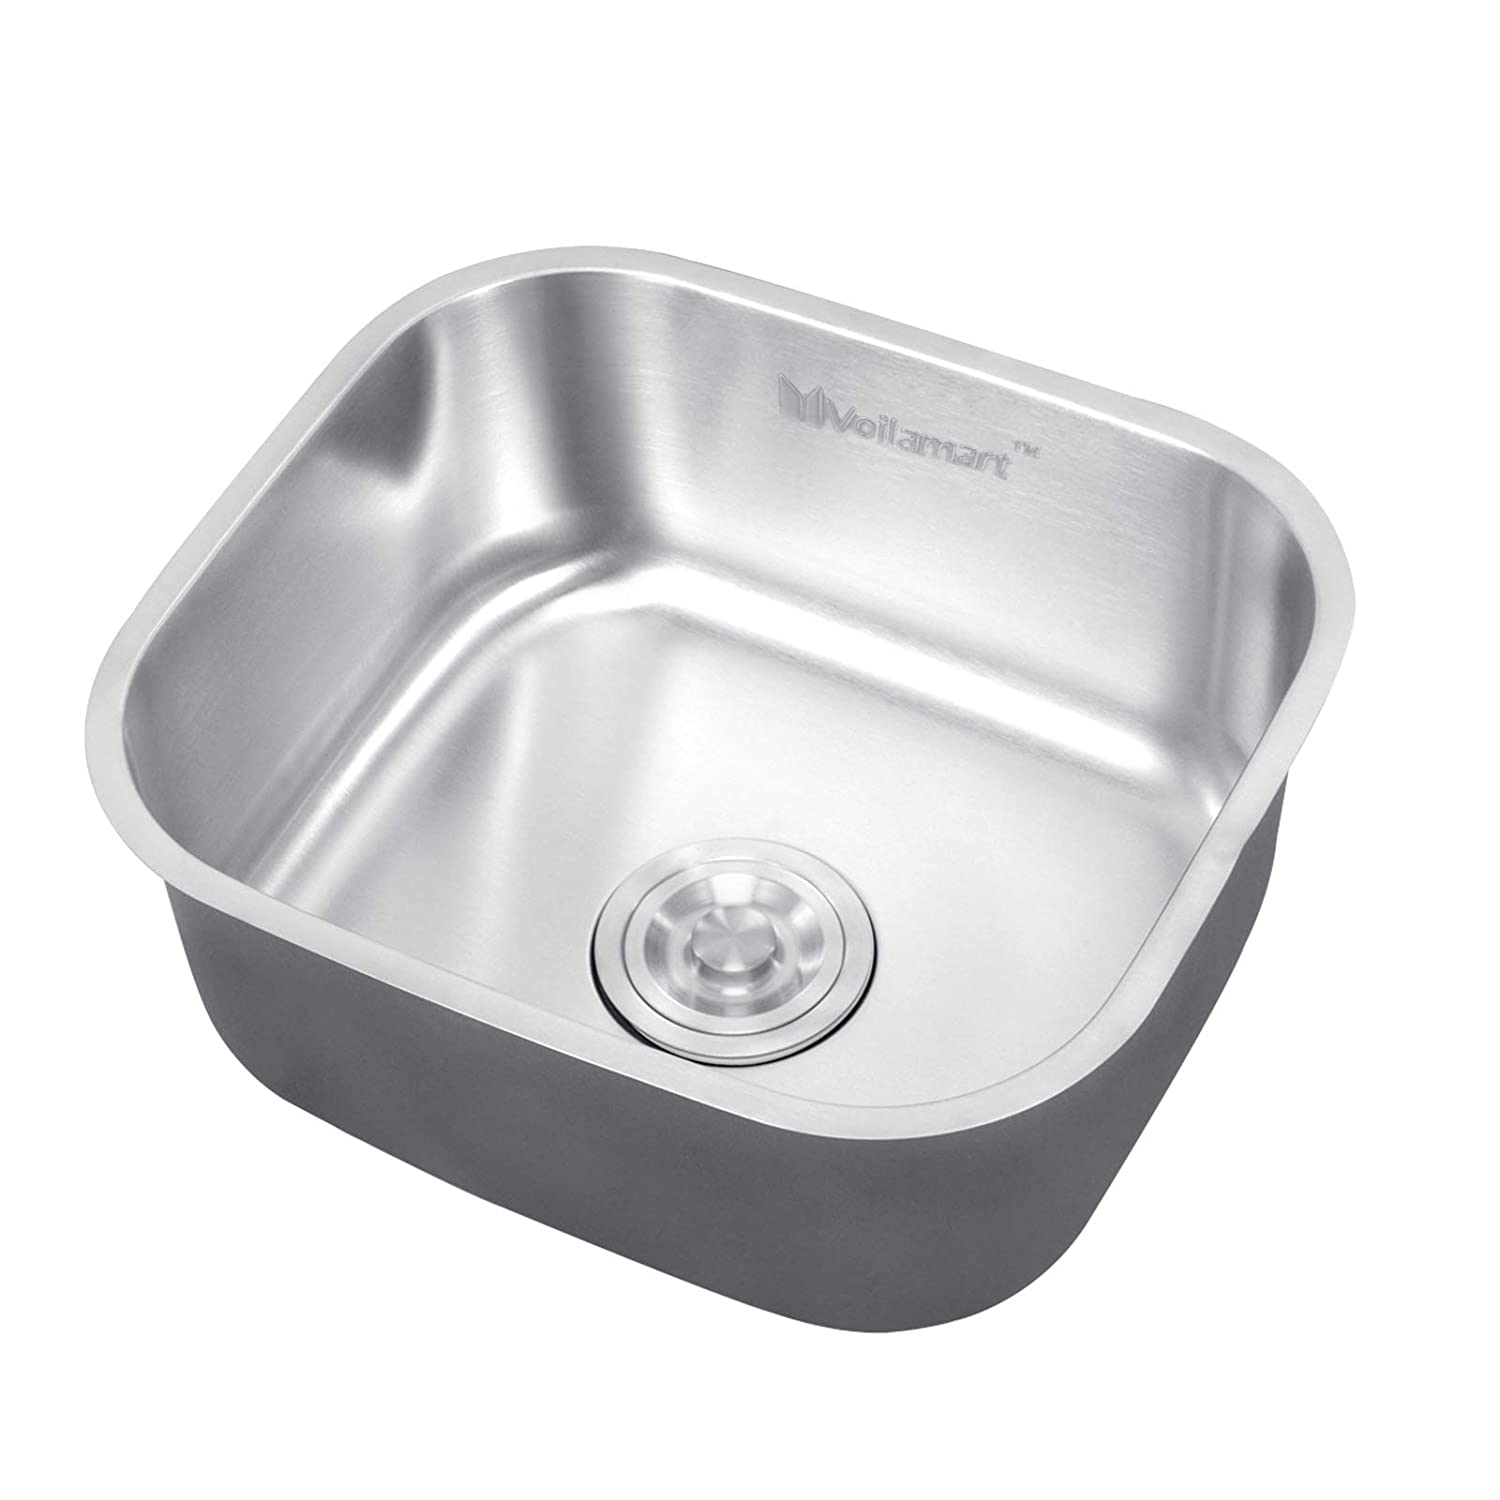 voilamart steel stainless kitchen sink 1 0 single bowl square sink rh amazon co uk square kitchen sink with drainer square kitchen sink vs round